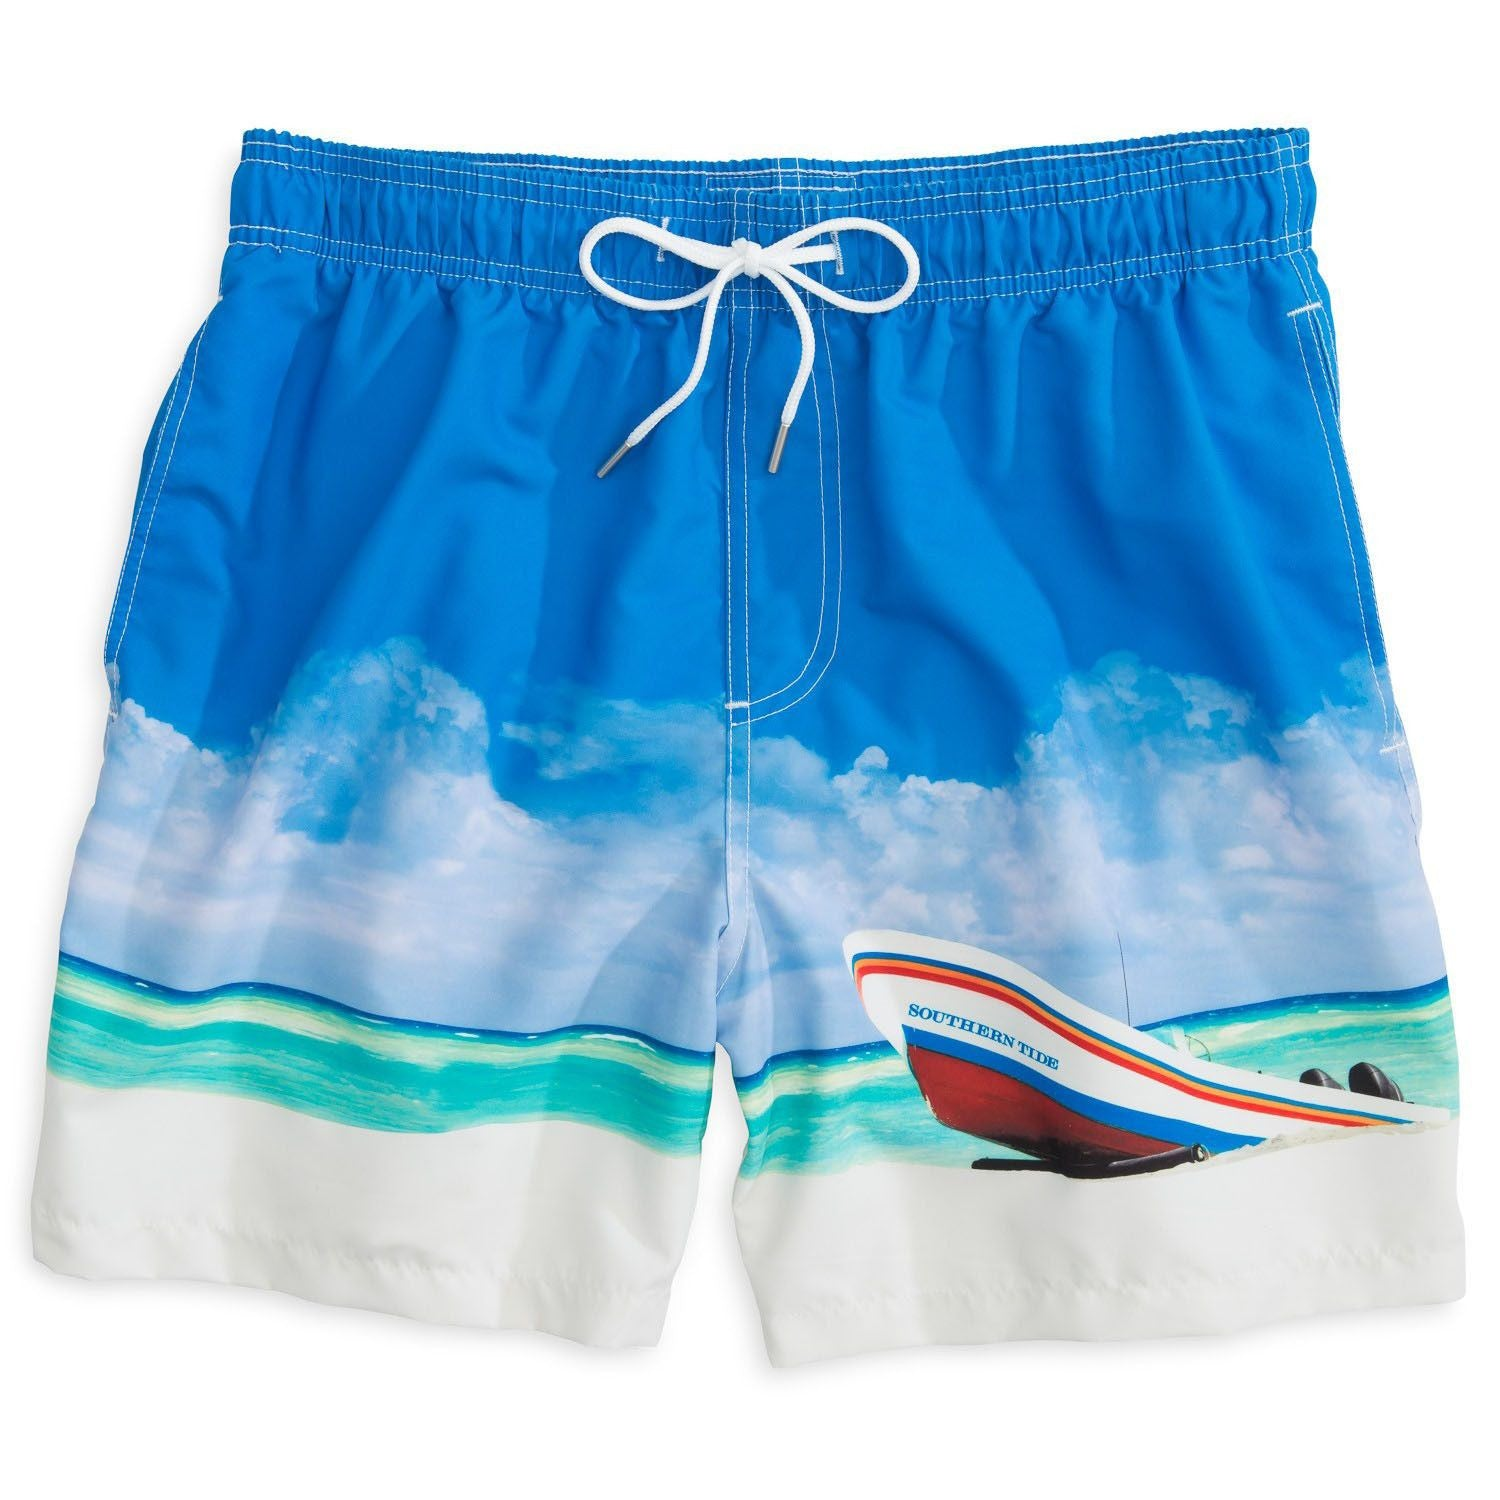 934a169644 Bermuda Triangle Swim Trunks | Southern Tide - Tide and Peak Outfitters